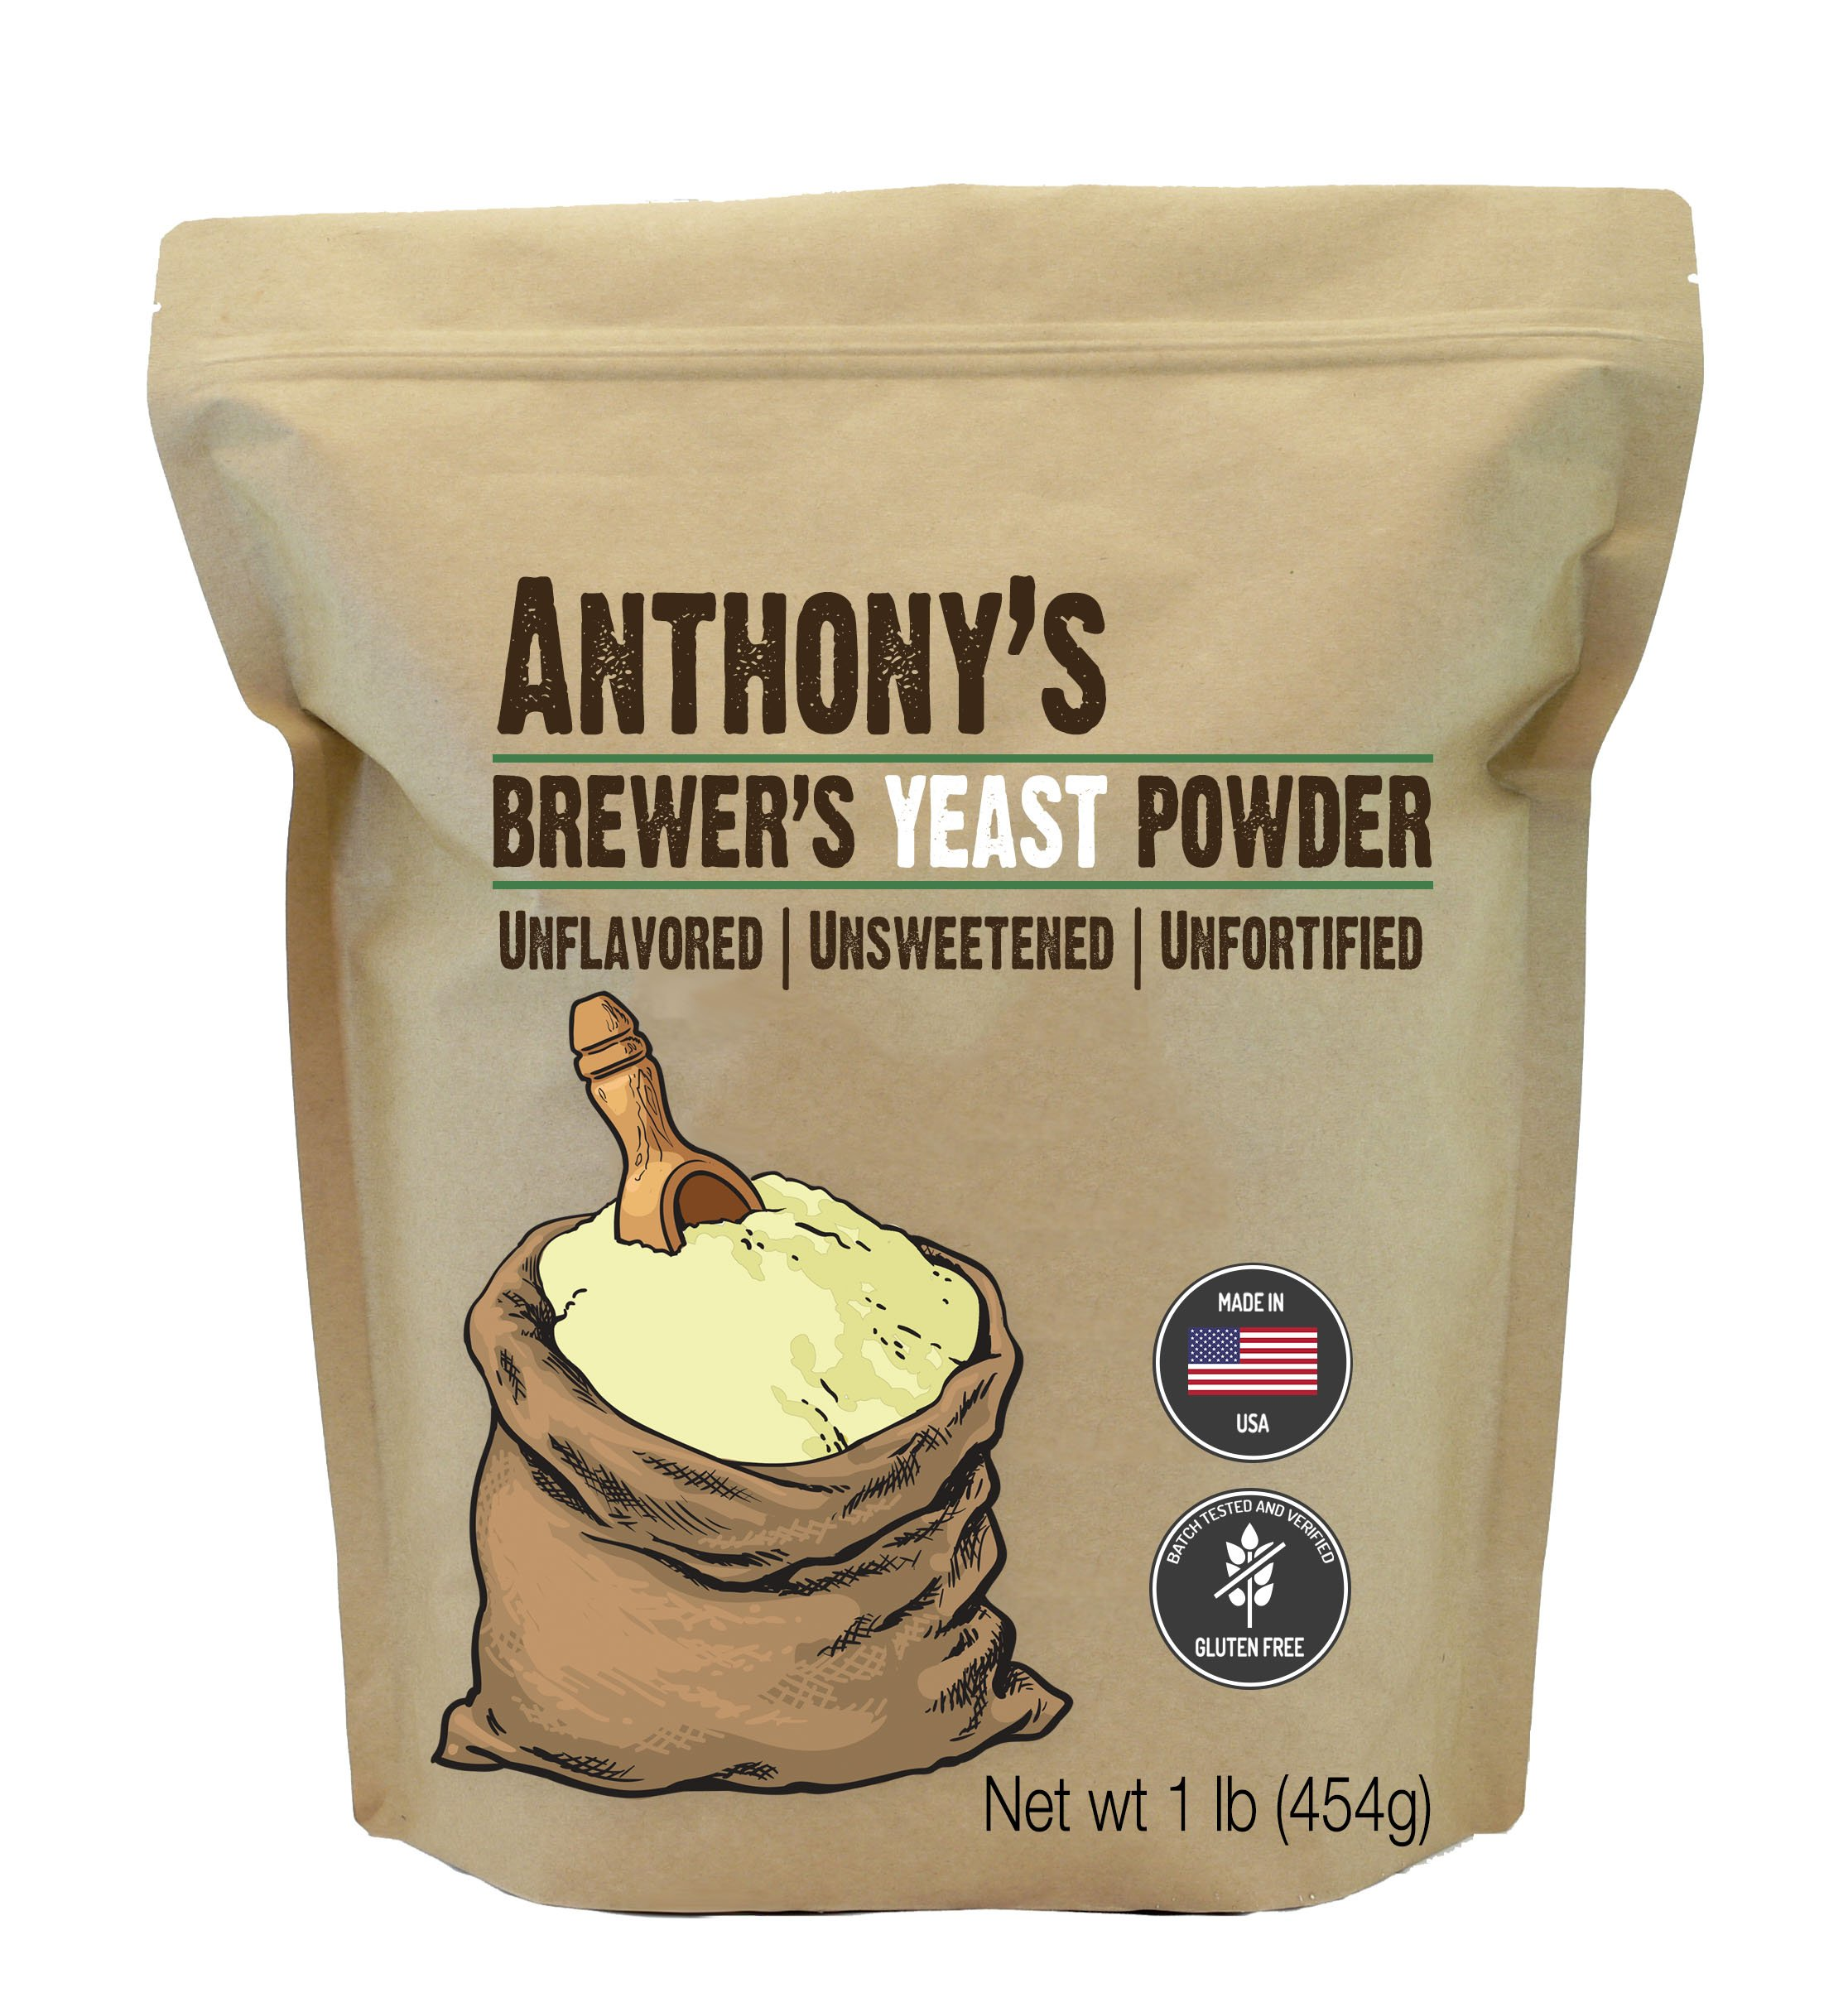 Anthony's Brewer's Yeast, 1 lb, Made in USA, Gluten Free, Unflavored and Unsweetened